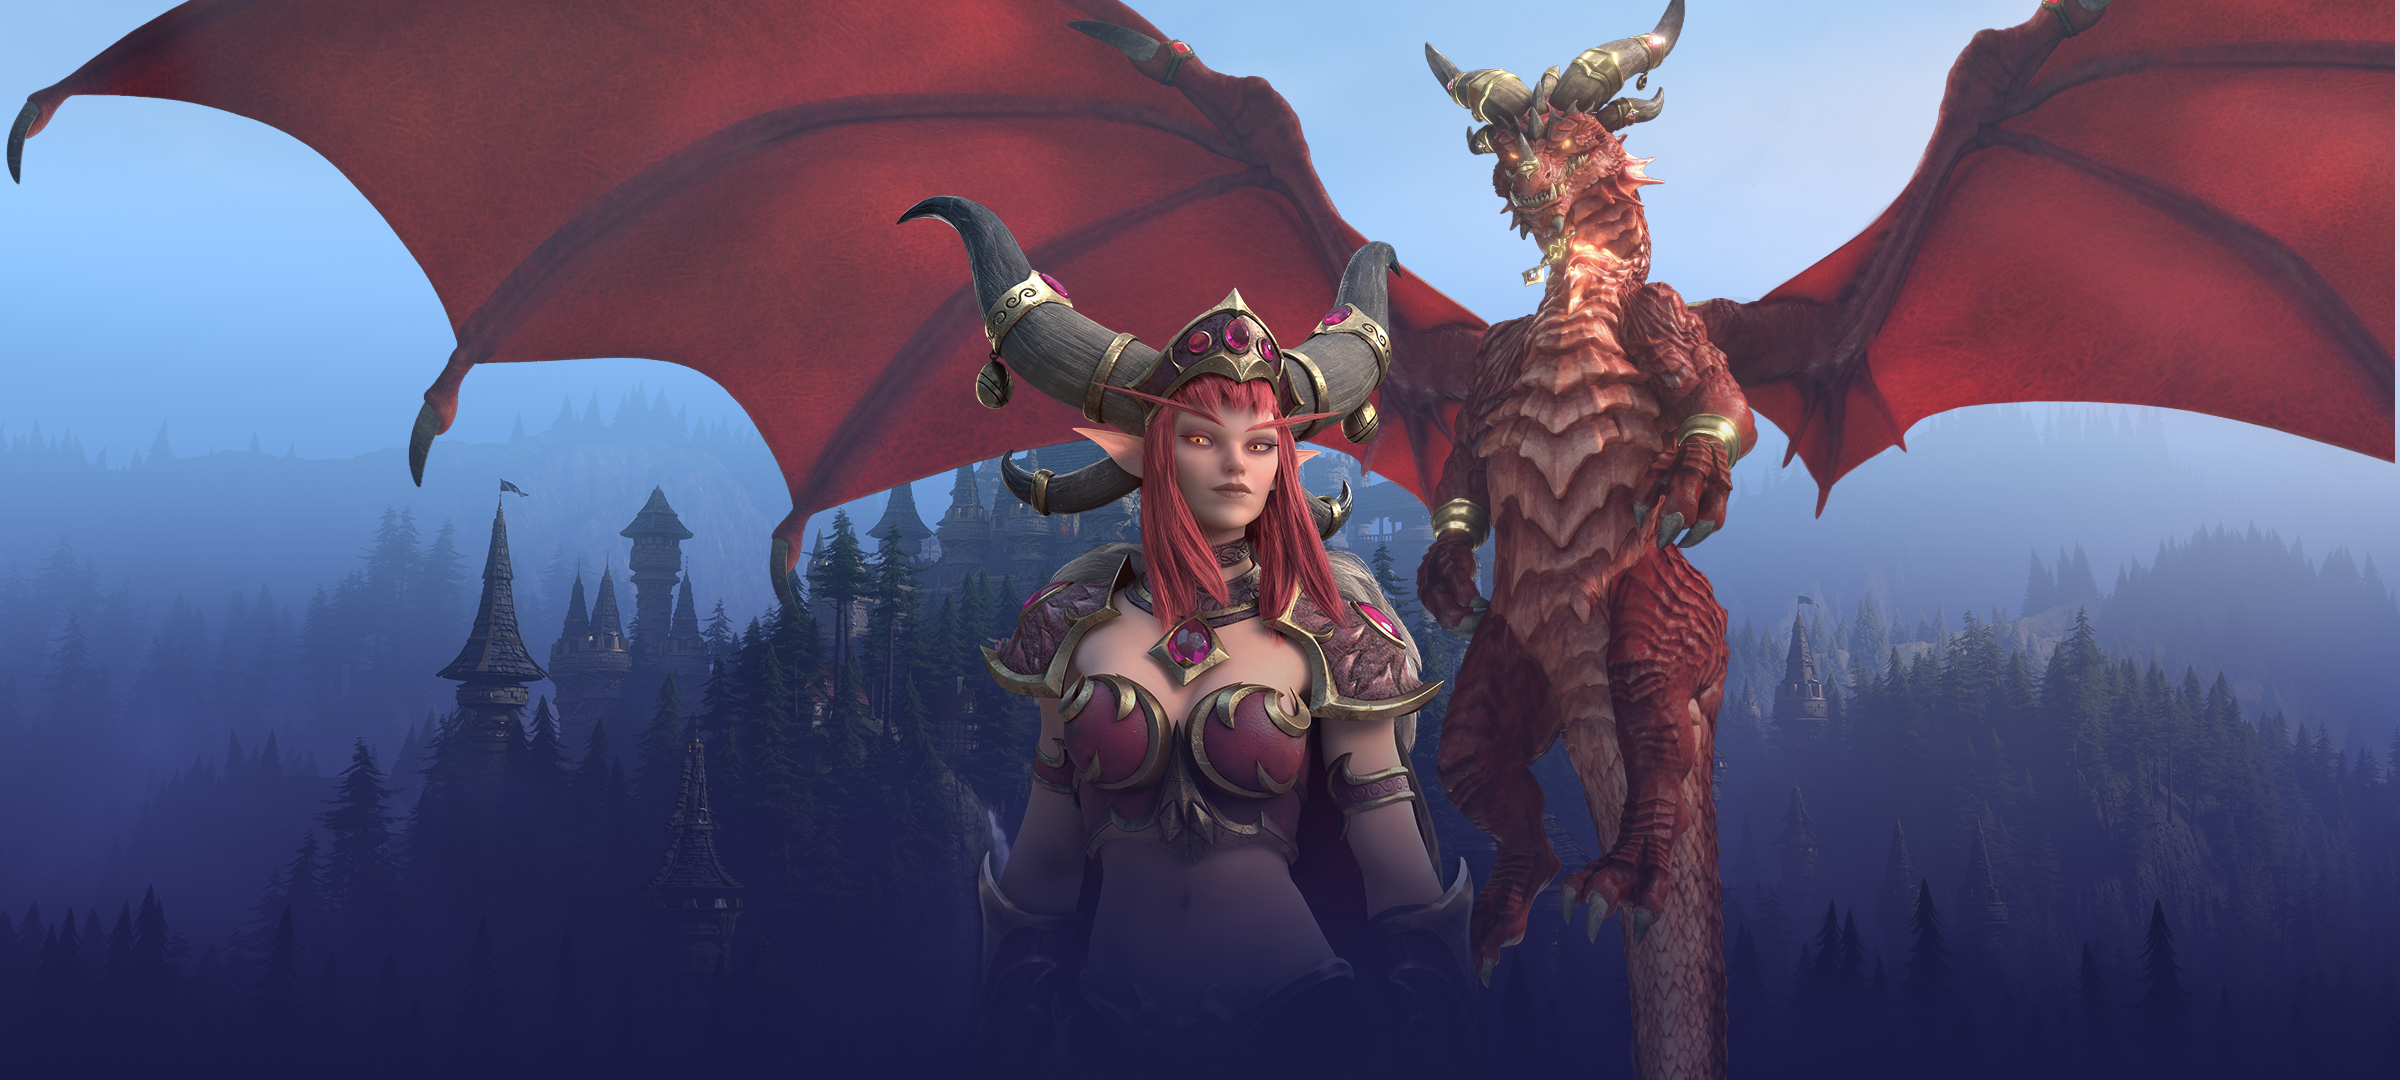 Dragons Of The Nexus Alexstrasza Background Png 2400 1080 Gargoyles Characters Heroes Of The Storm Warcraft Art Alexstrasza, the queen of dragons, was empowered by the titans to be the guardian of all life on azeroth. gargoyles characters heroes